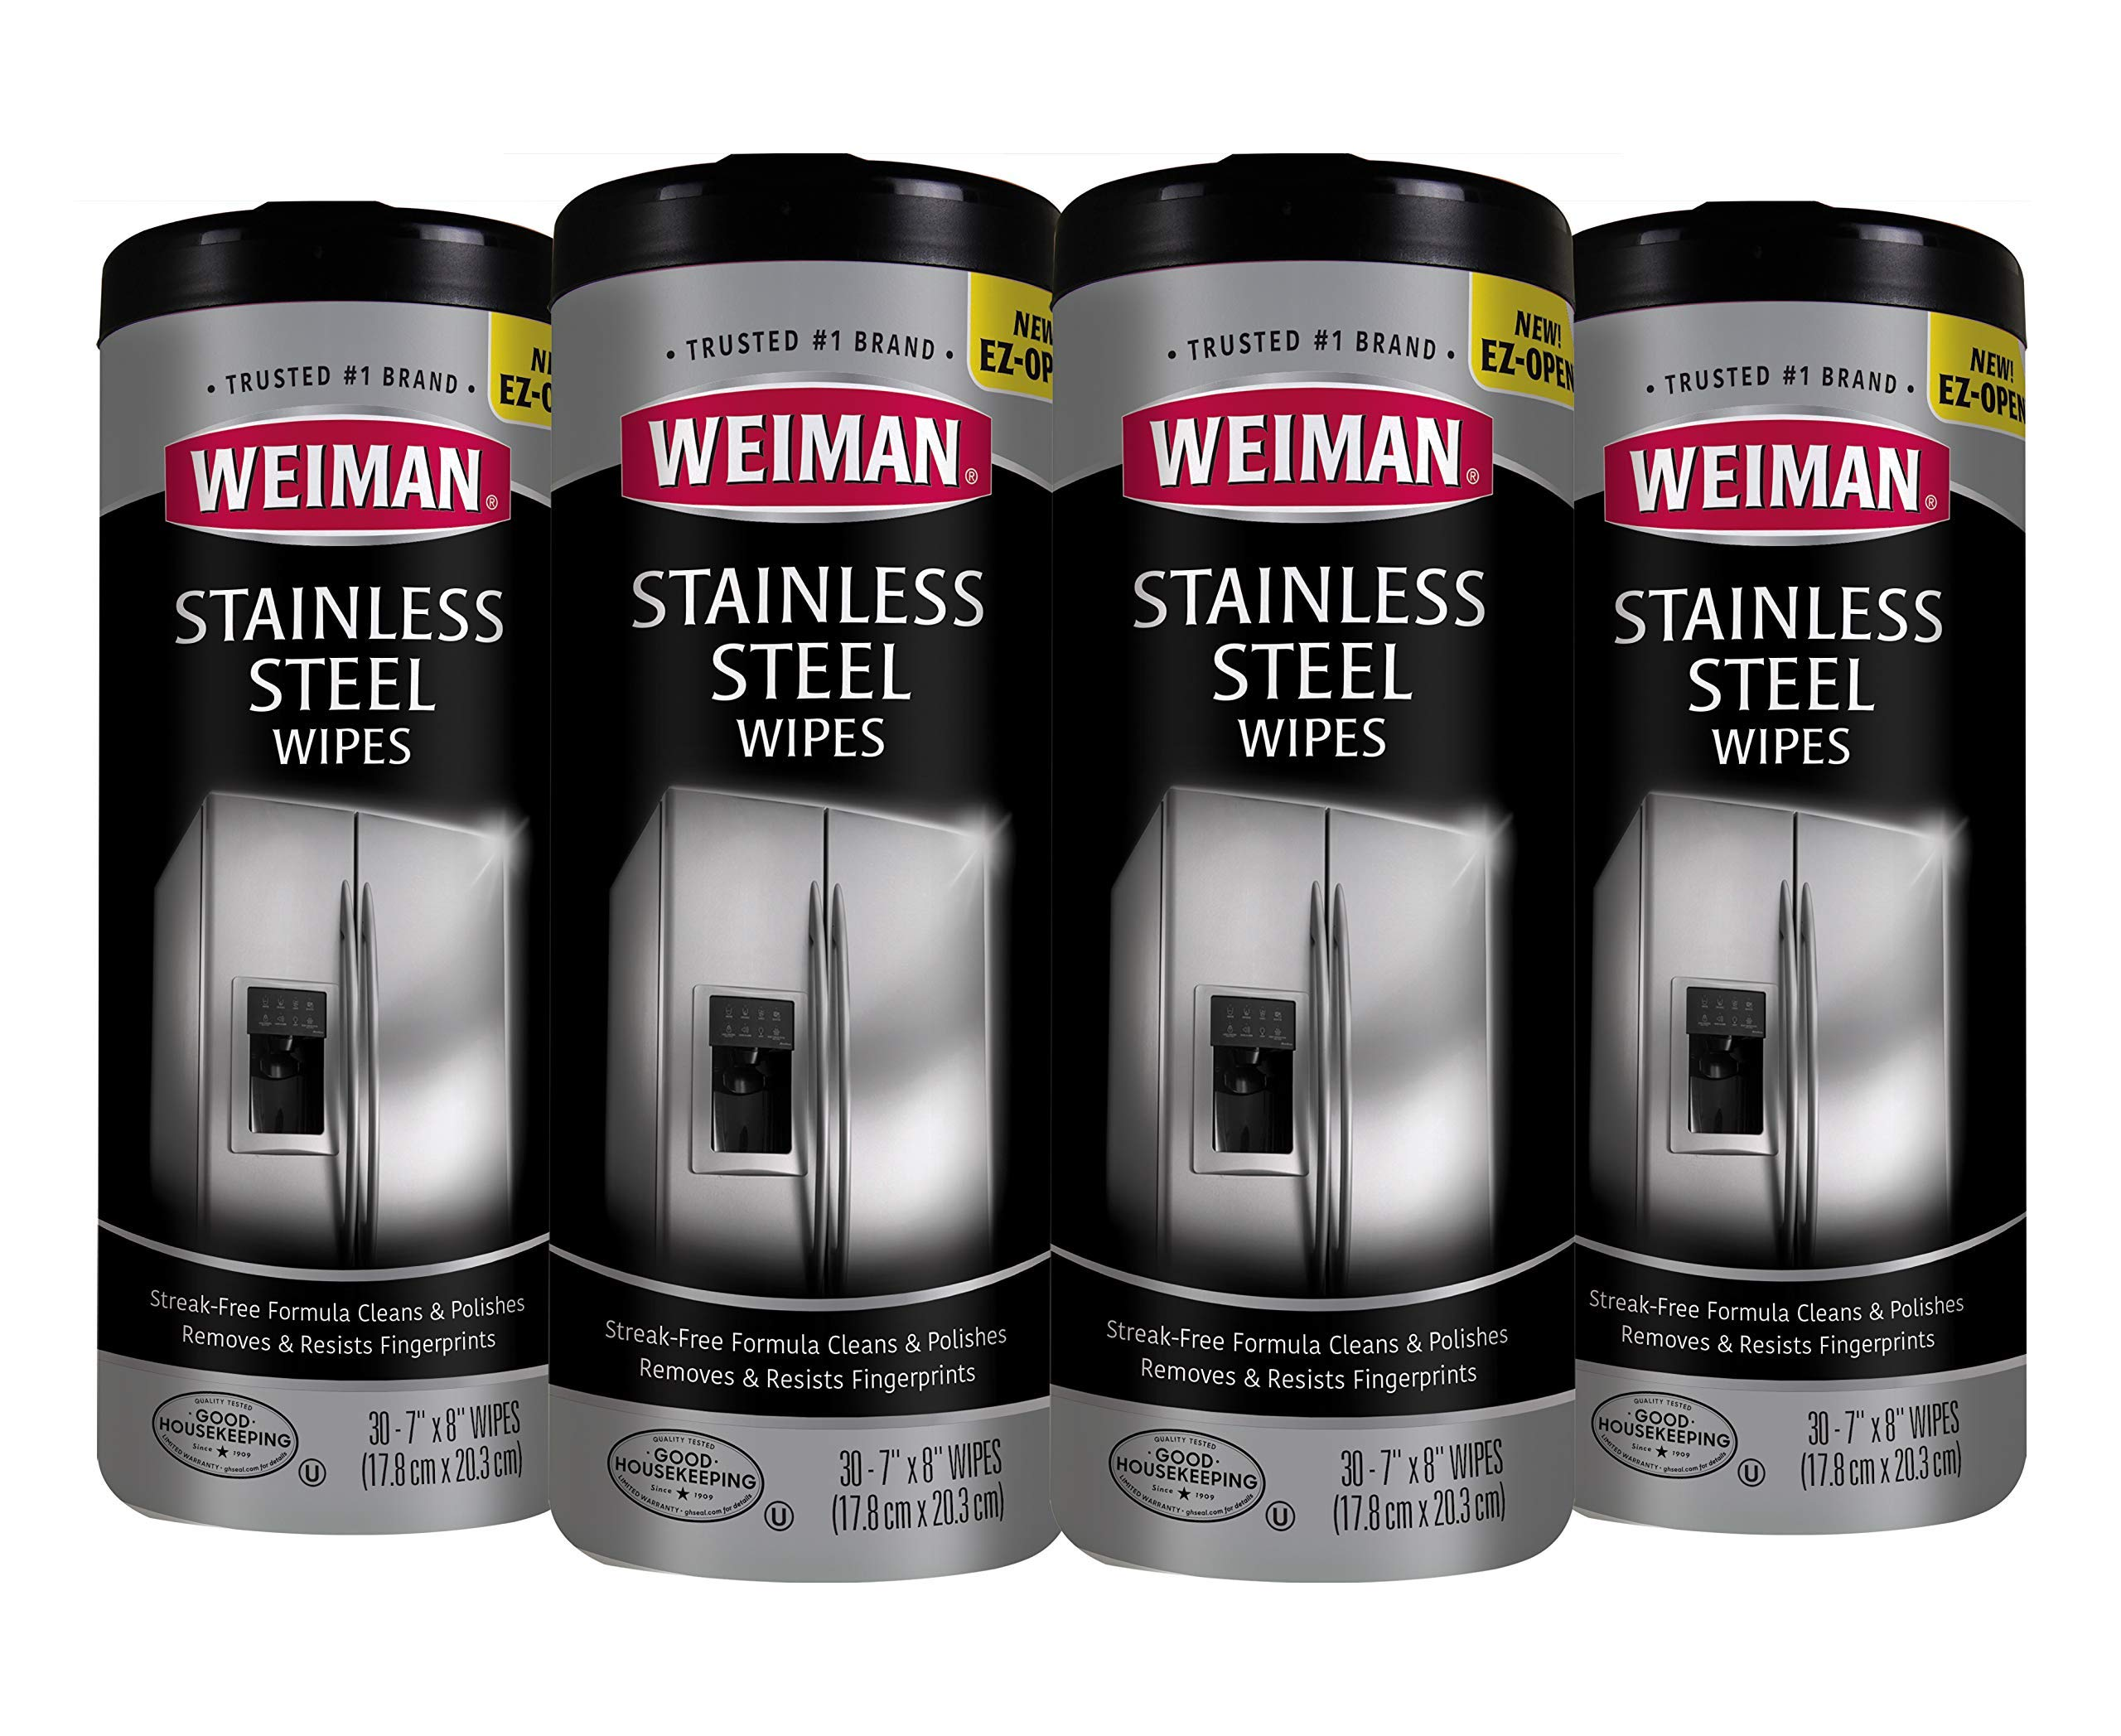 Weiman Stainless Steel Cleaner Wipes (4 Pack) Removes Fingerprints, Residue, Water Marks and Grease from Appliances - Works Great on Refrigerators, Dishwashers, Ovens, and Grills by Weiman